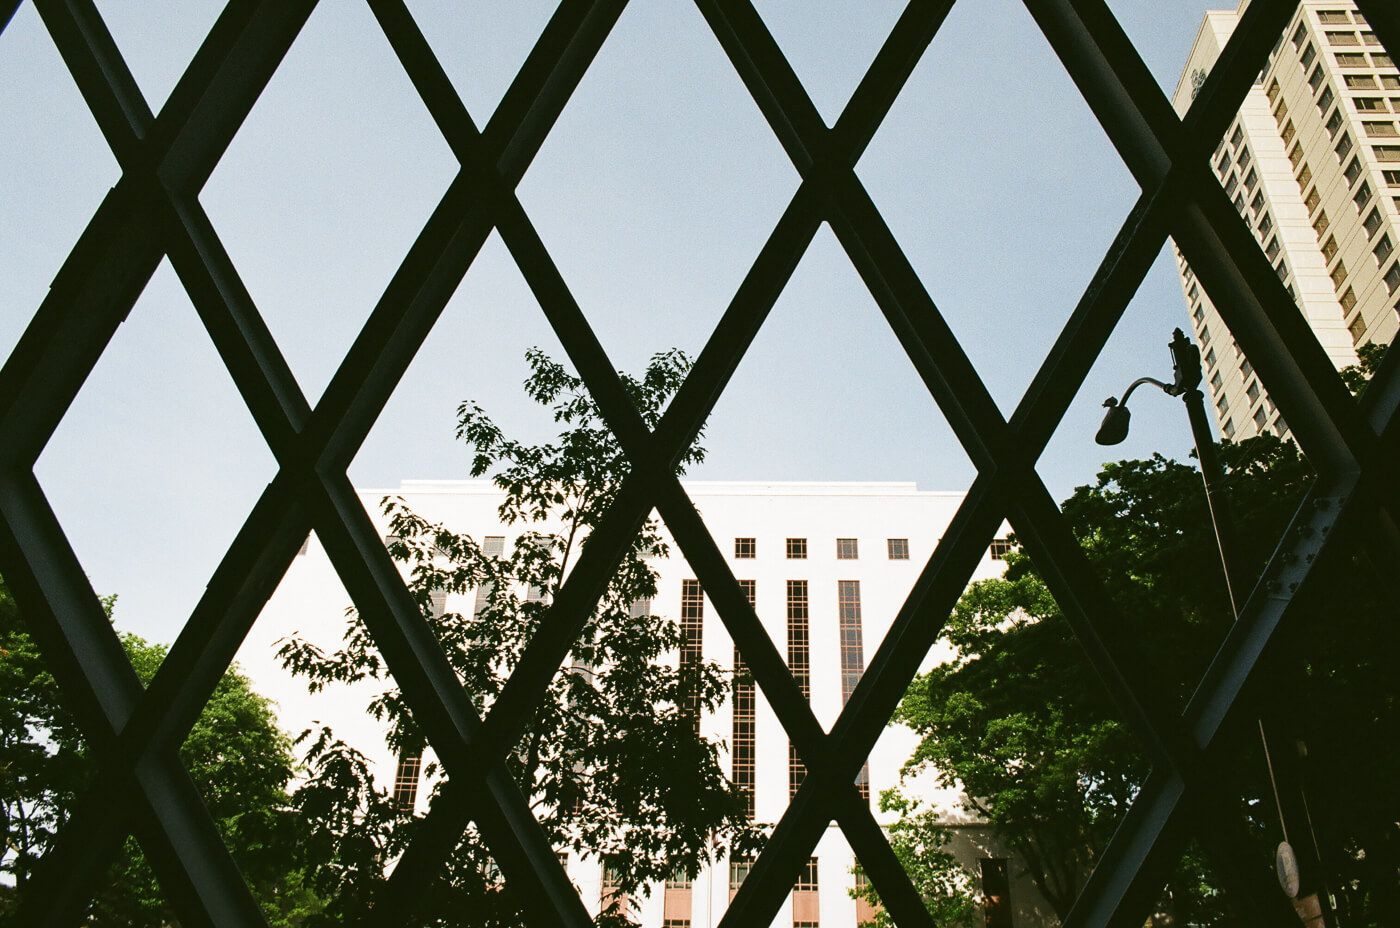 Looking out the diamond shaped window panes at a building across the street